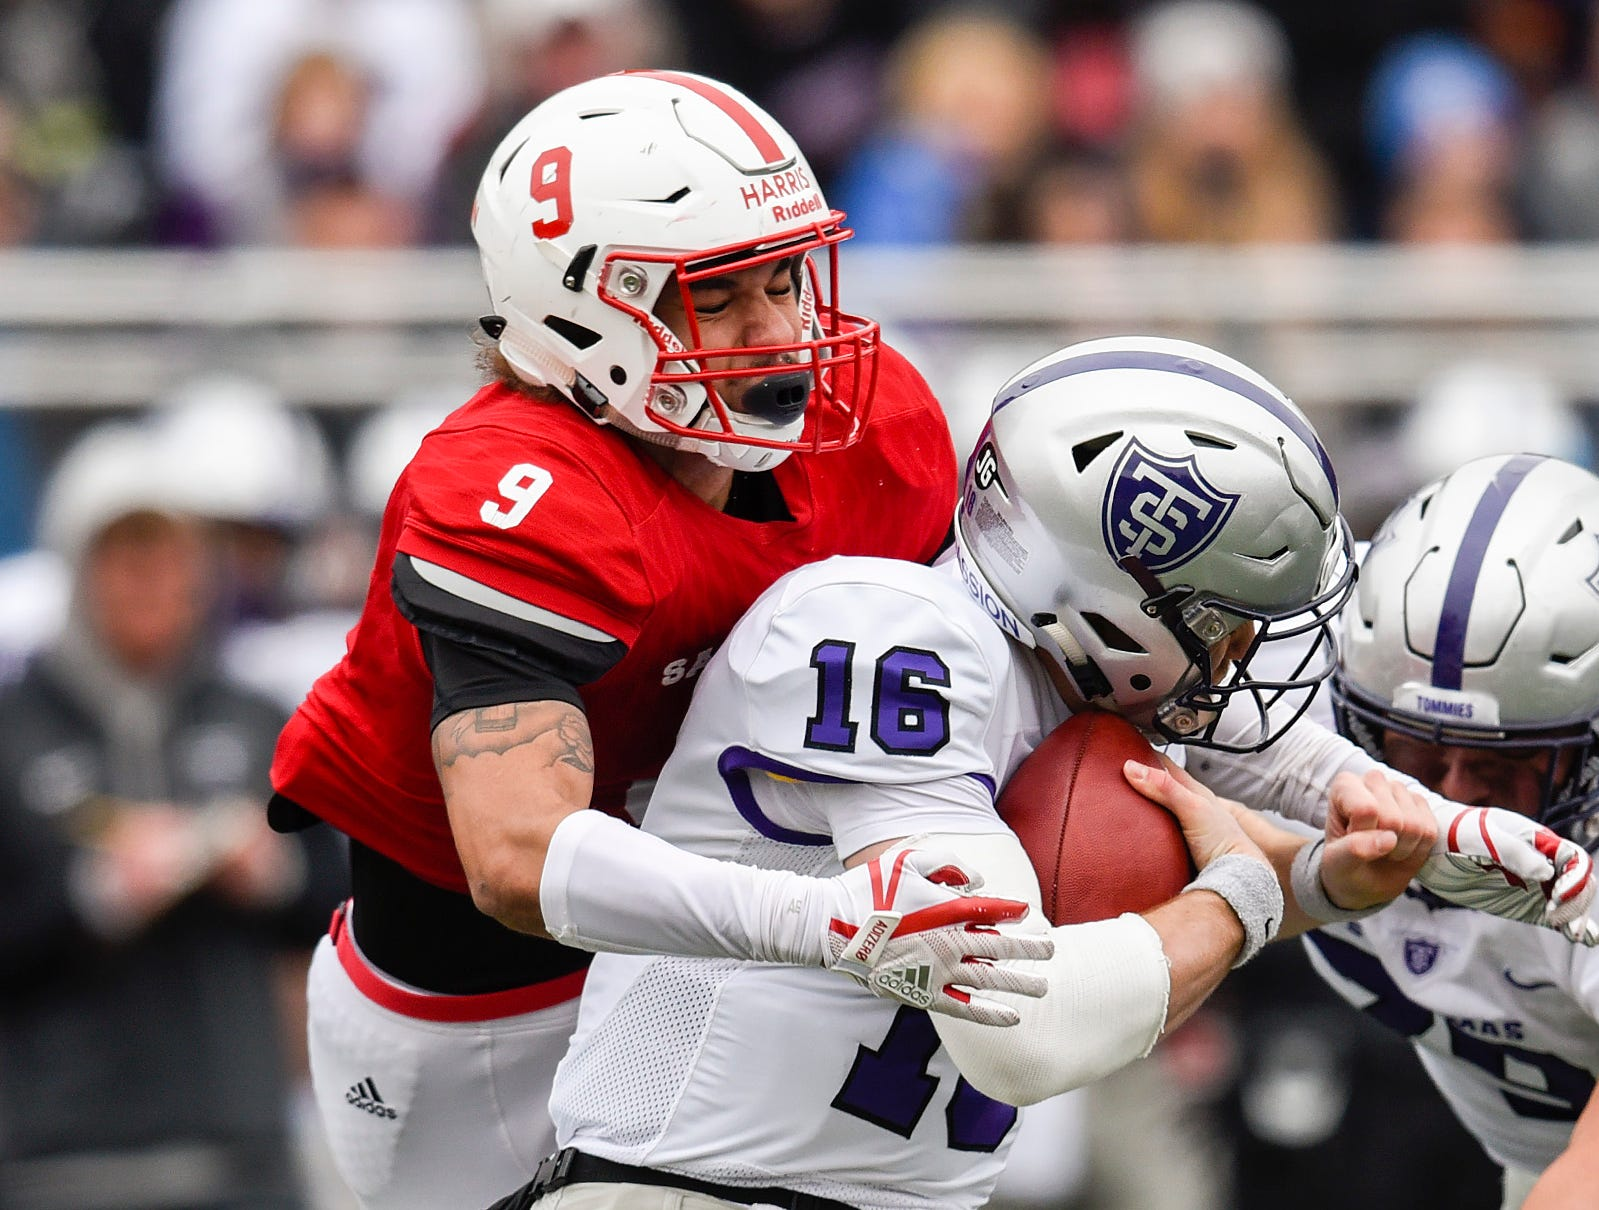 St. John's Chris Harris sacks St. Thomas quarterback Jacques Perra for a loss during the first half Saturday, Oct. 13, in Collegeville.